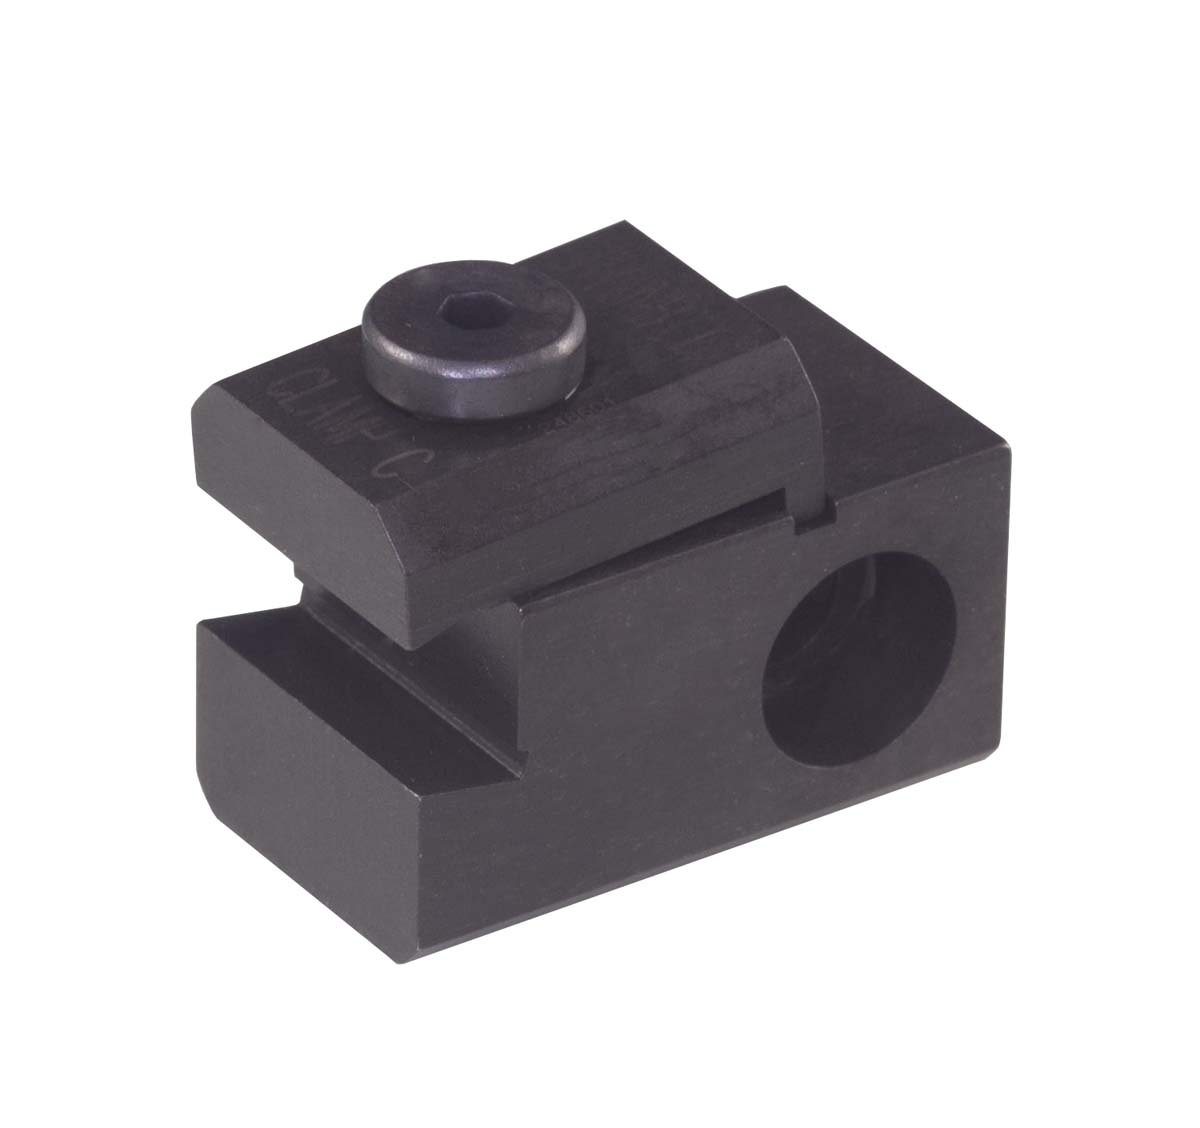 THINBIT LRE0158 Large Series straight reversible head for Left or Right hand on a 1 inch x 5//8 inch toolholder shank Use with any L Series insert.